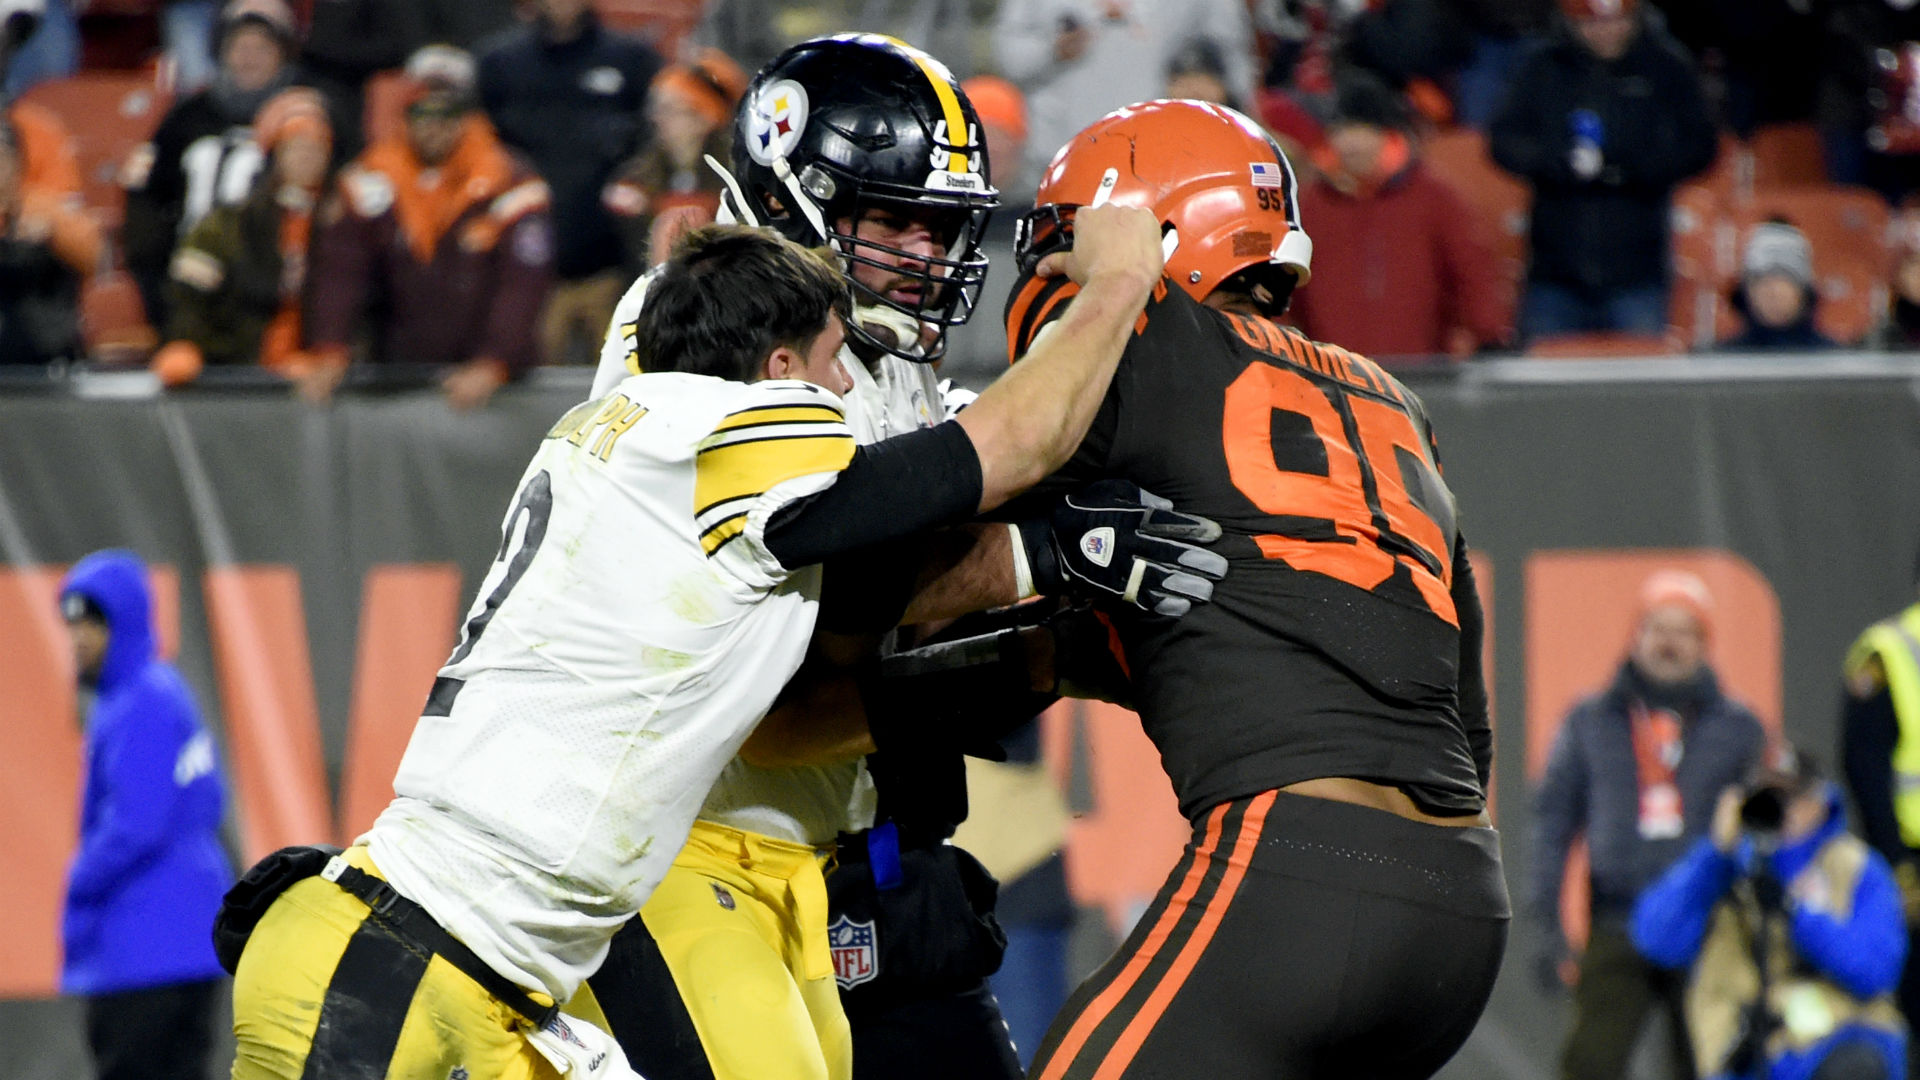 Myles Garrett after signing record contract: Mason Rudolph incident 'a small bump in the road' 1